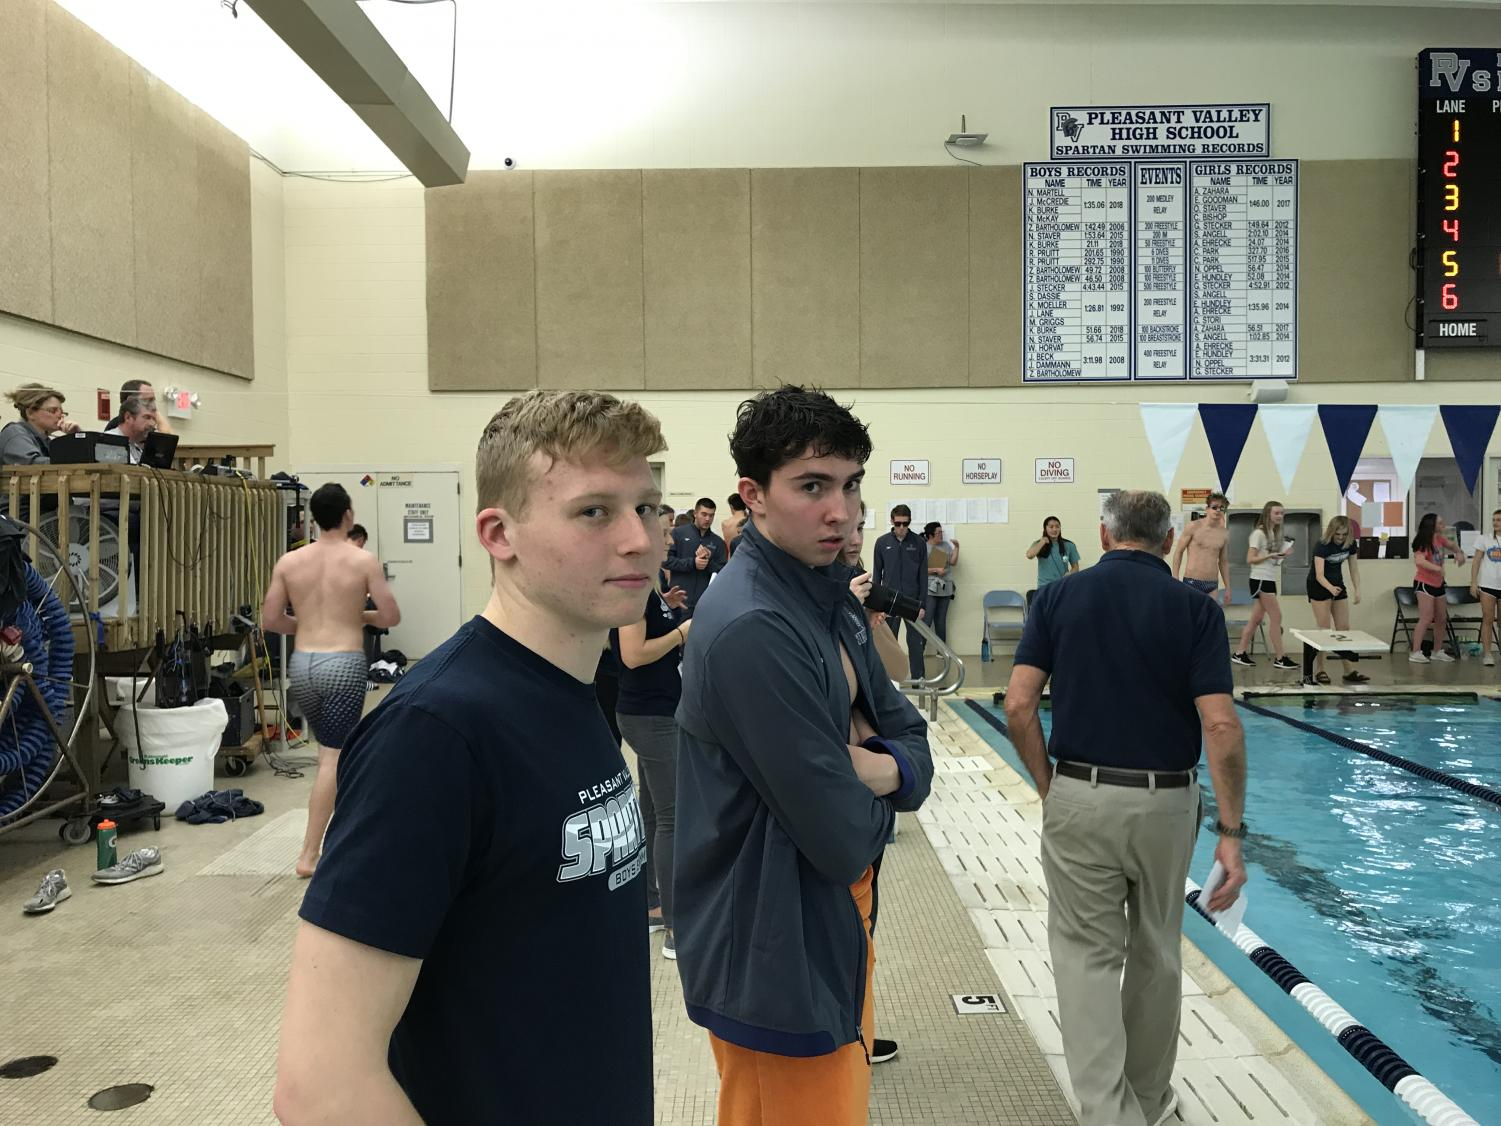 Senior captains Jacob Mccredie and Kevin Burke catch the camera as they watch their teammates swim from the sidelines. The boys' swim team is in the middle of season currently and can be found racing other schools in the swimming pool at Pleasant Valley High School